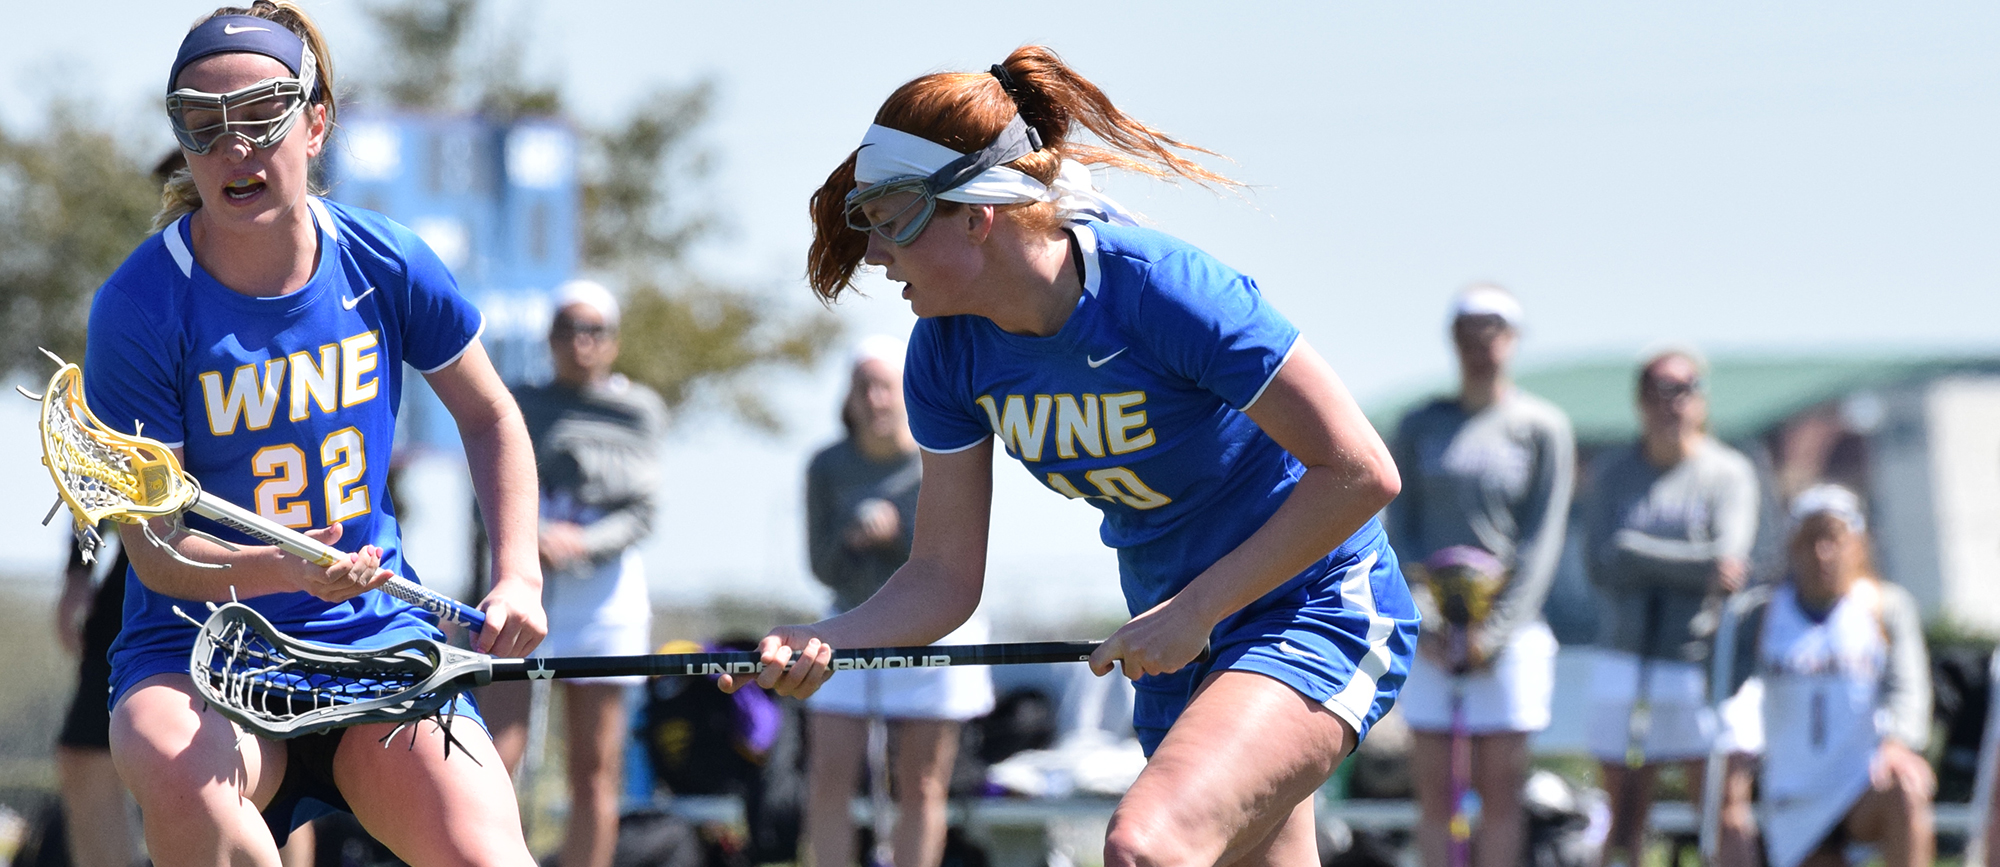 Sophomore Lindsey Phillips scored a career-high five goals in Western New England's 16-14 loss to Worcester State in Florida on Monday.